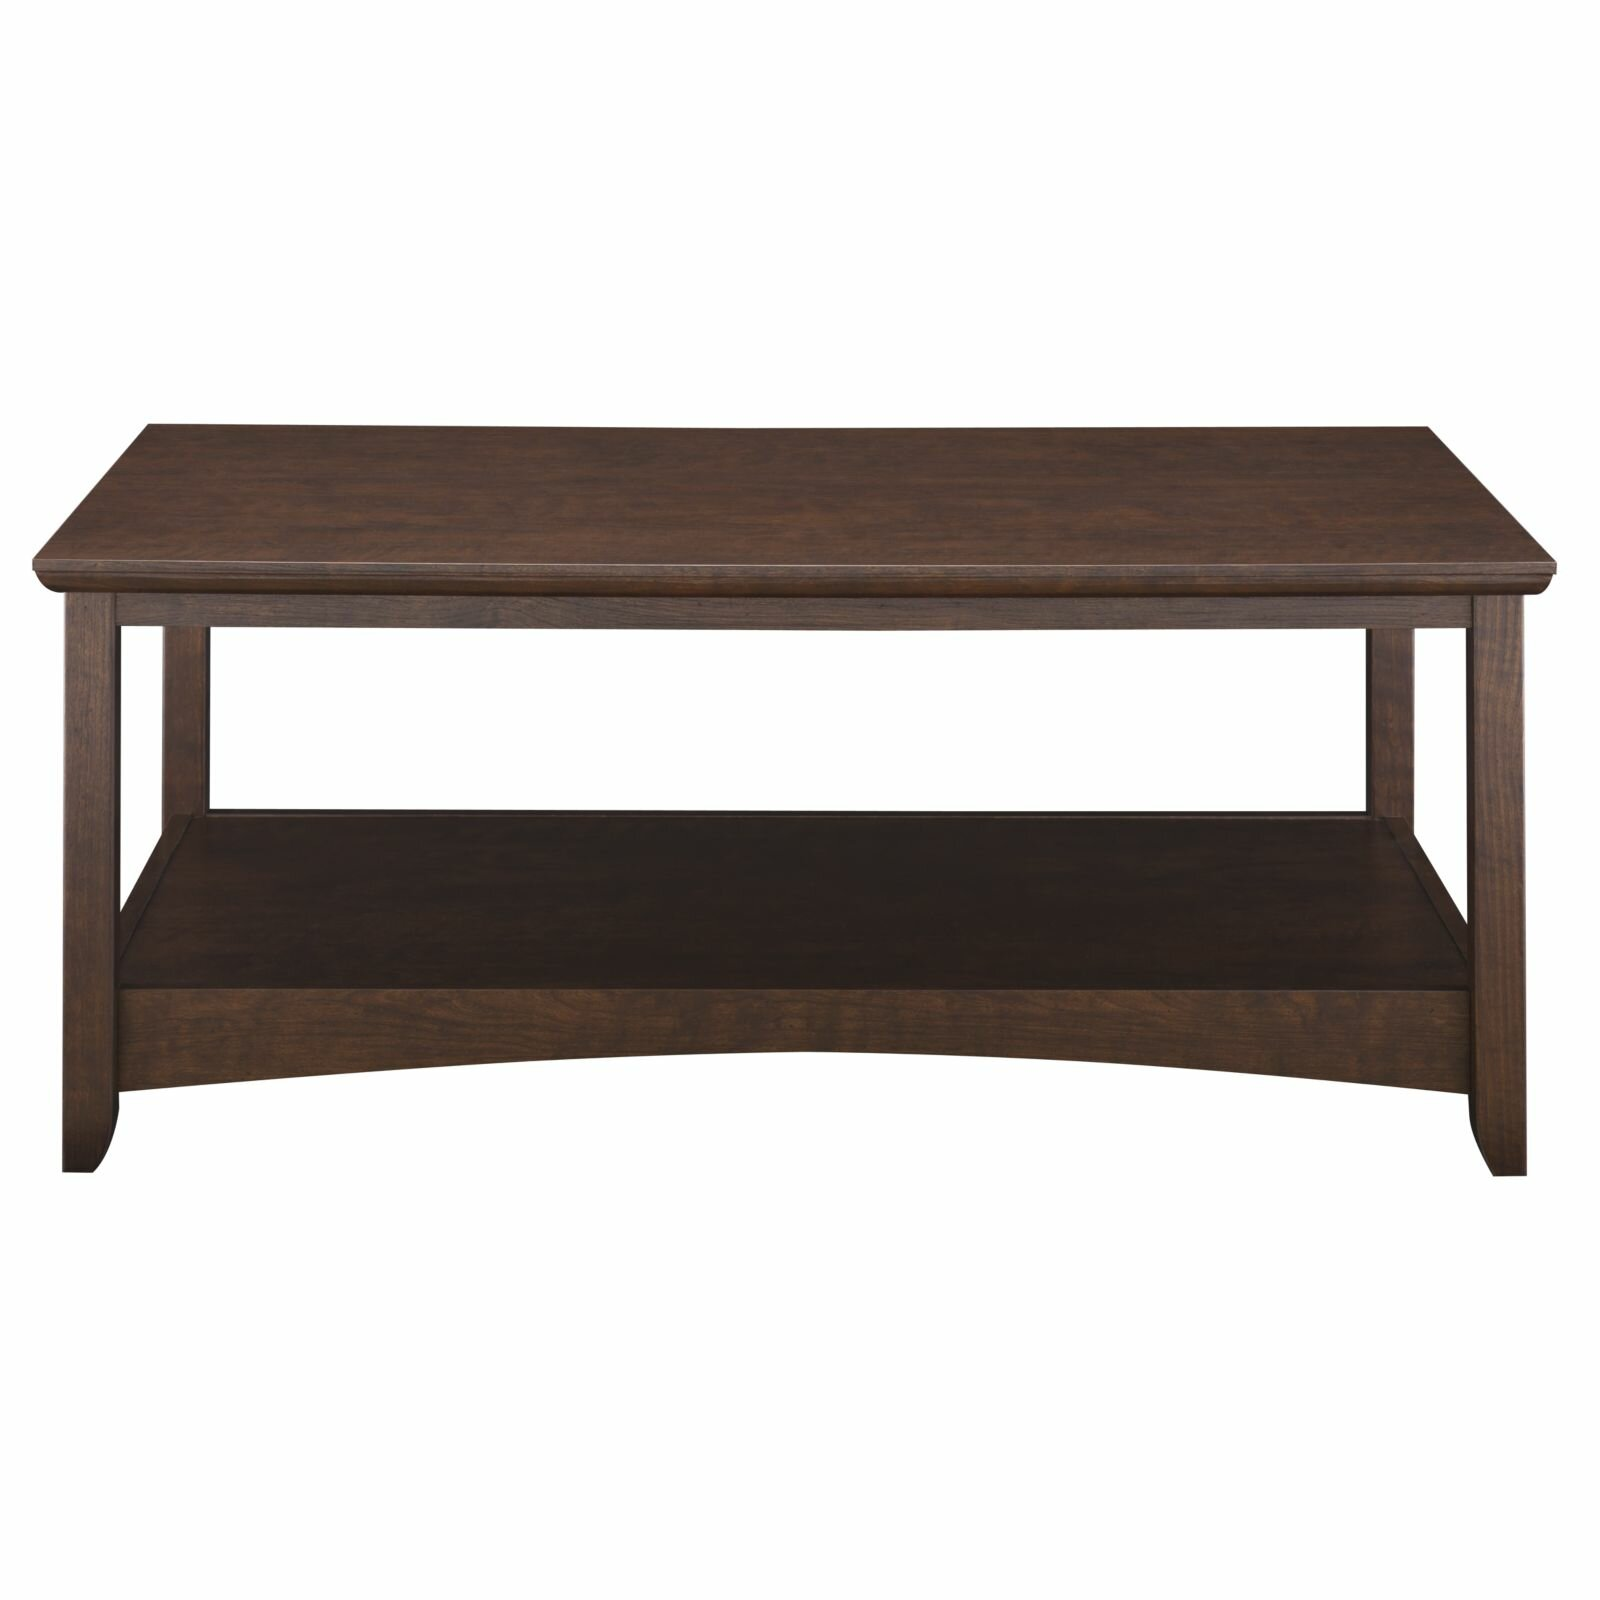 Darby home co egger coffee table reviews wayfair for Coffee tables zara home